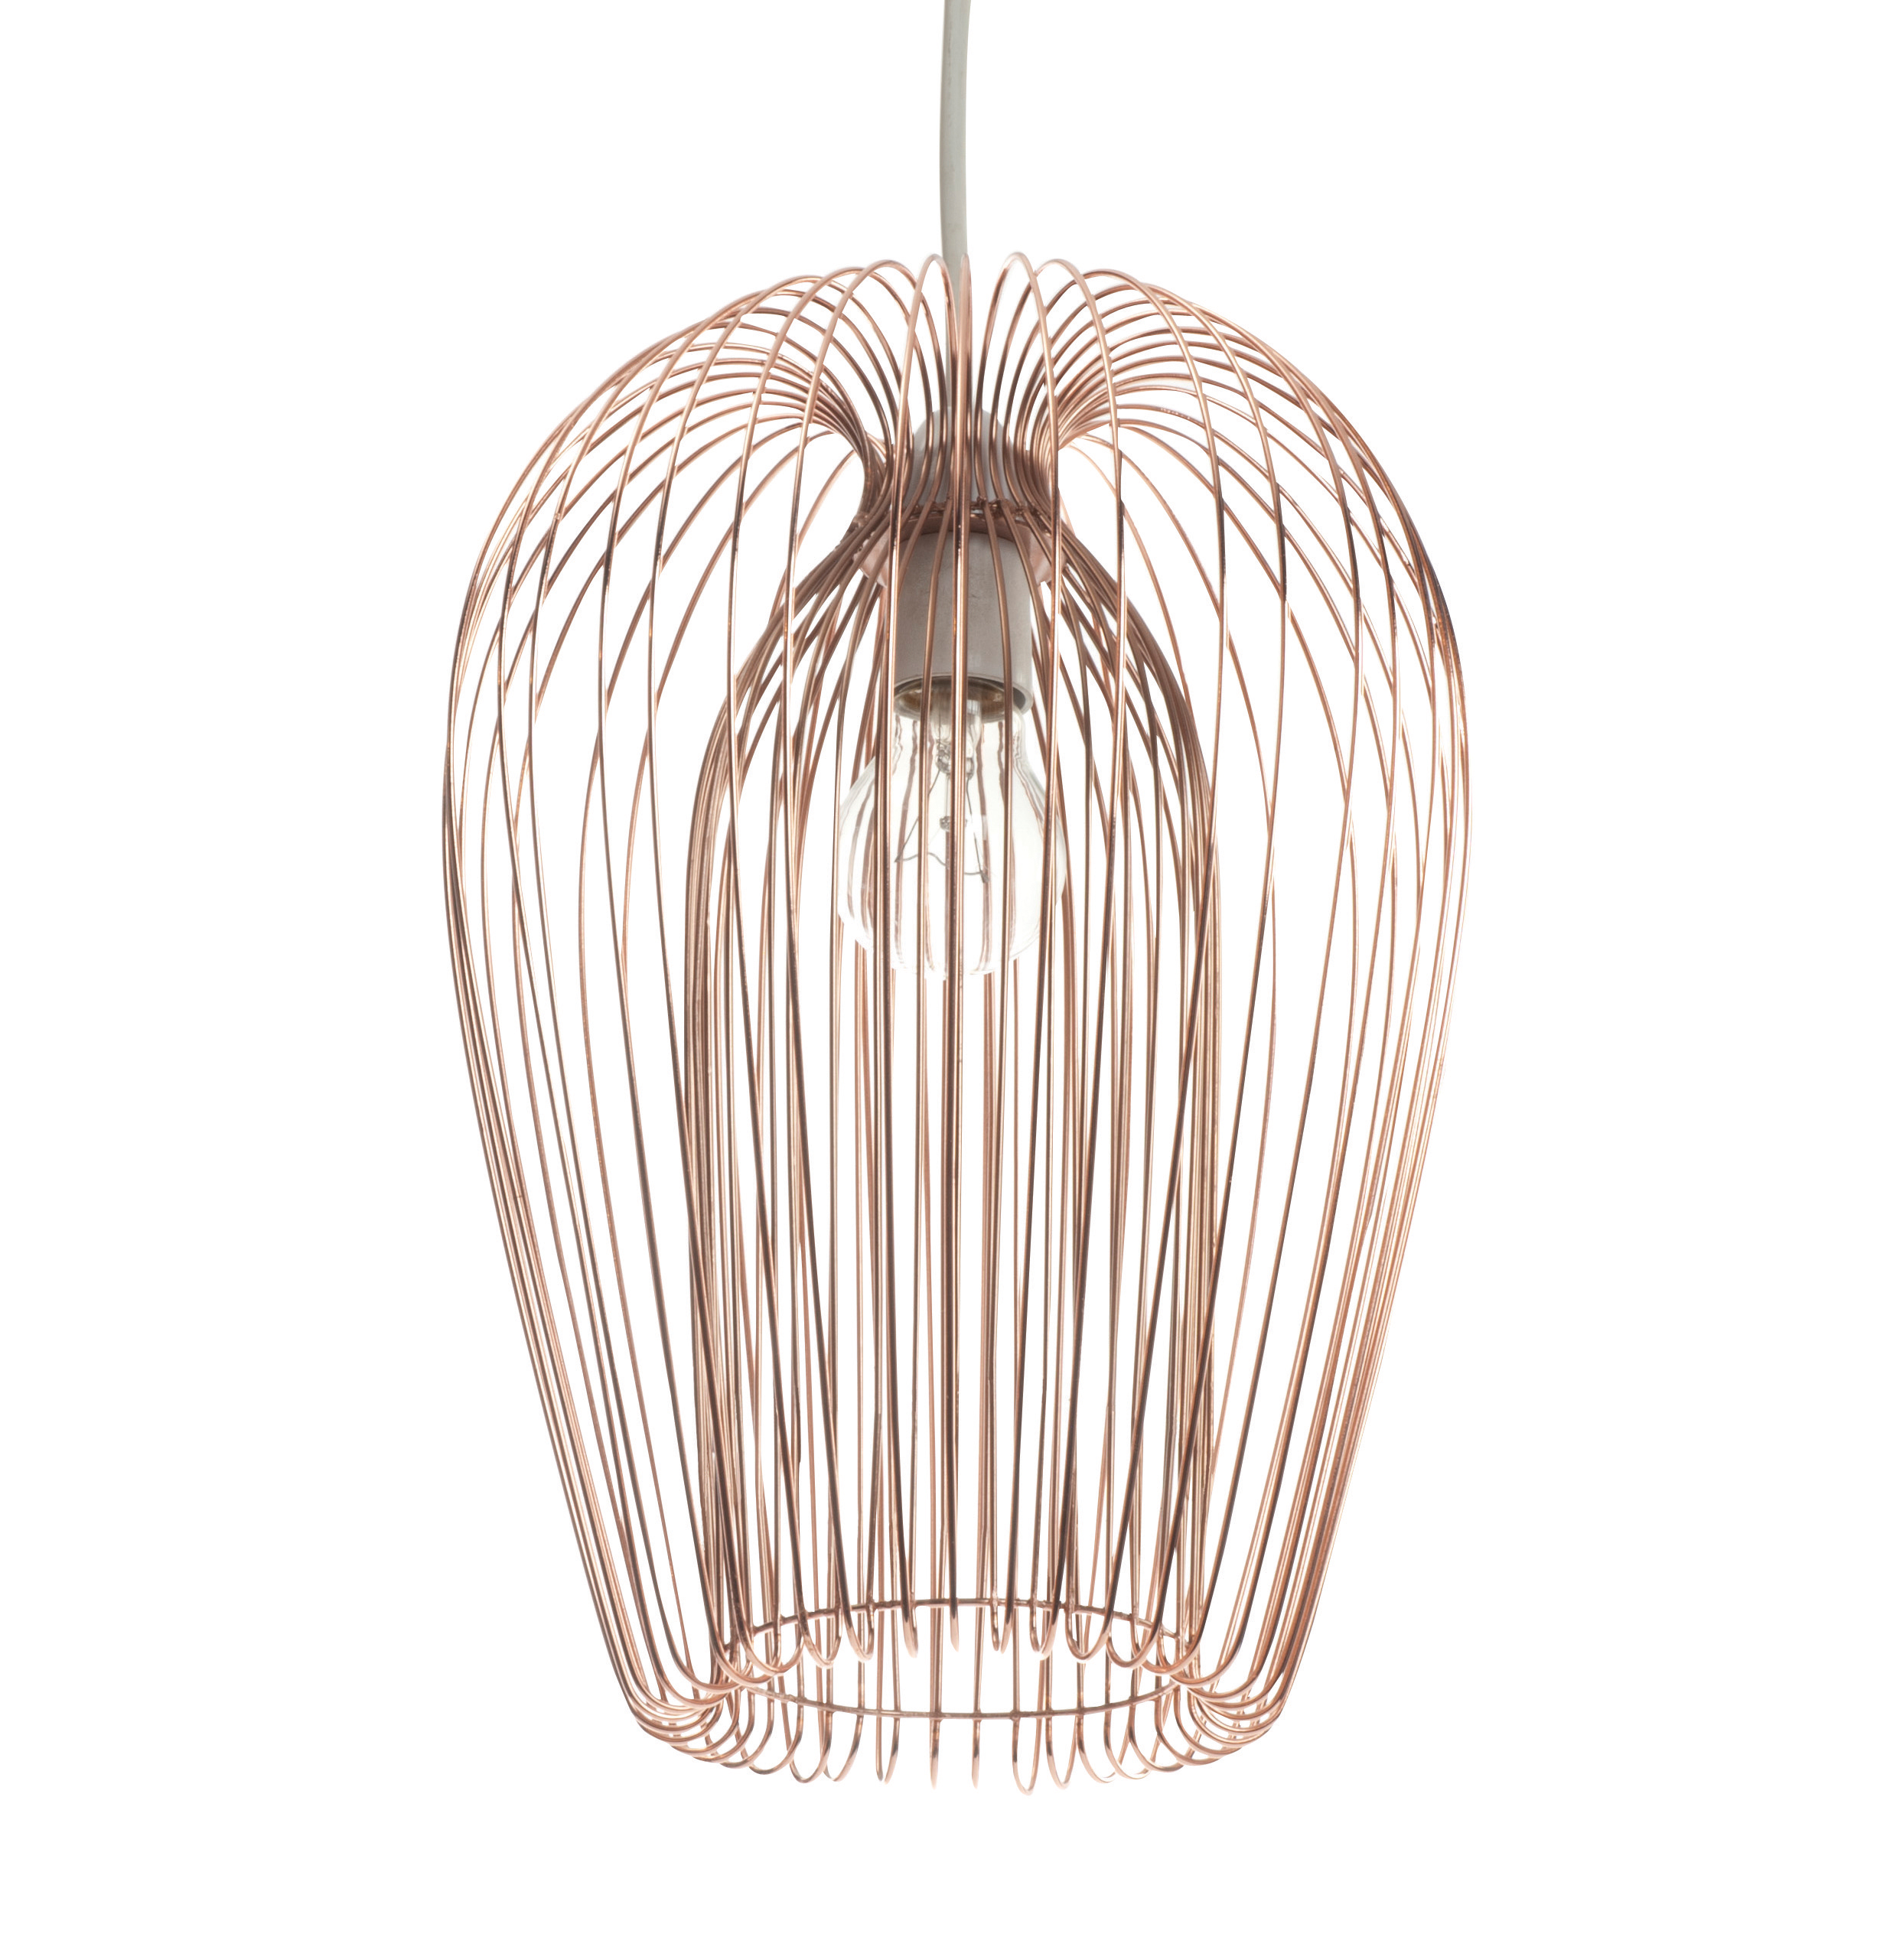 Pair Set Of 2 Contemporary Copper Wire Ceiling Light